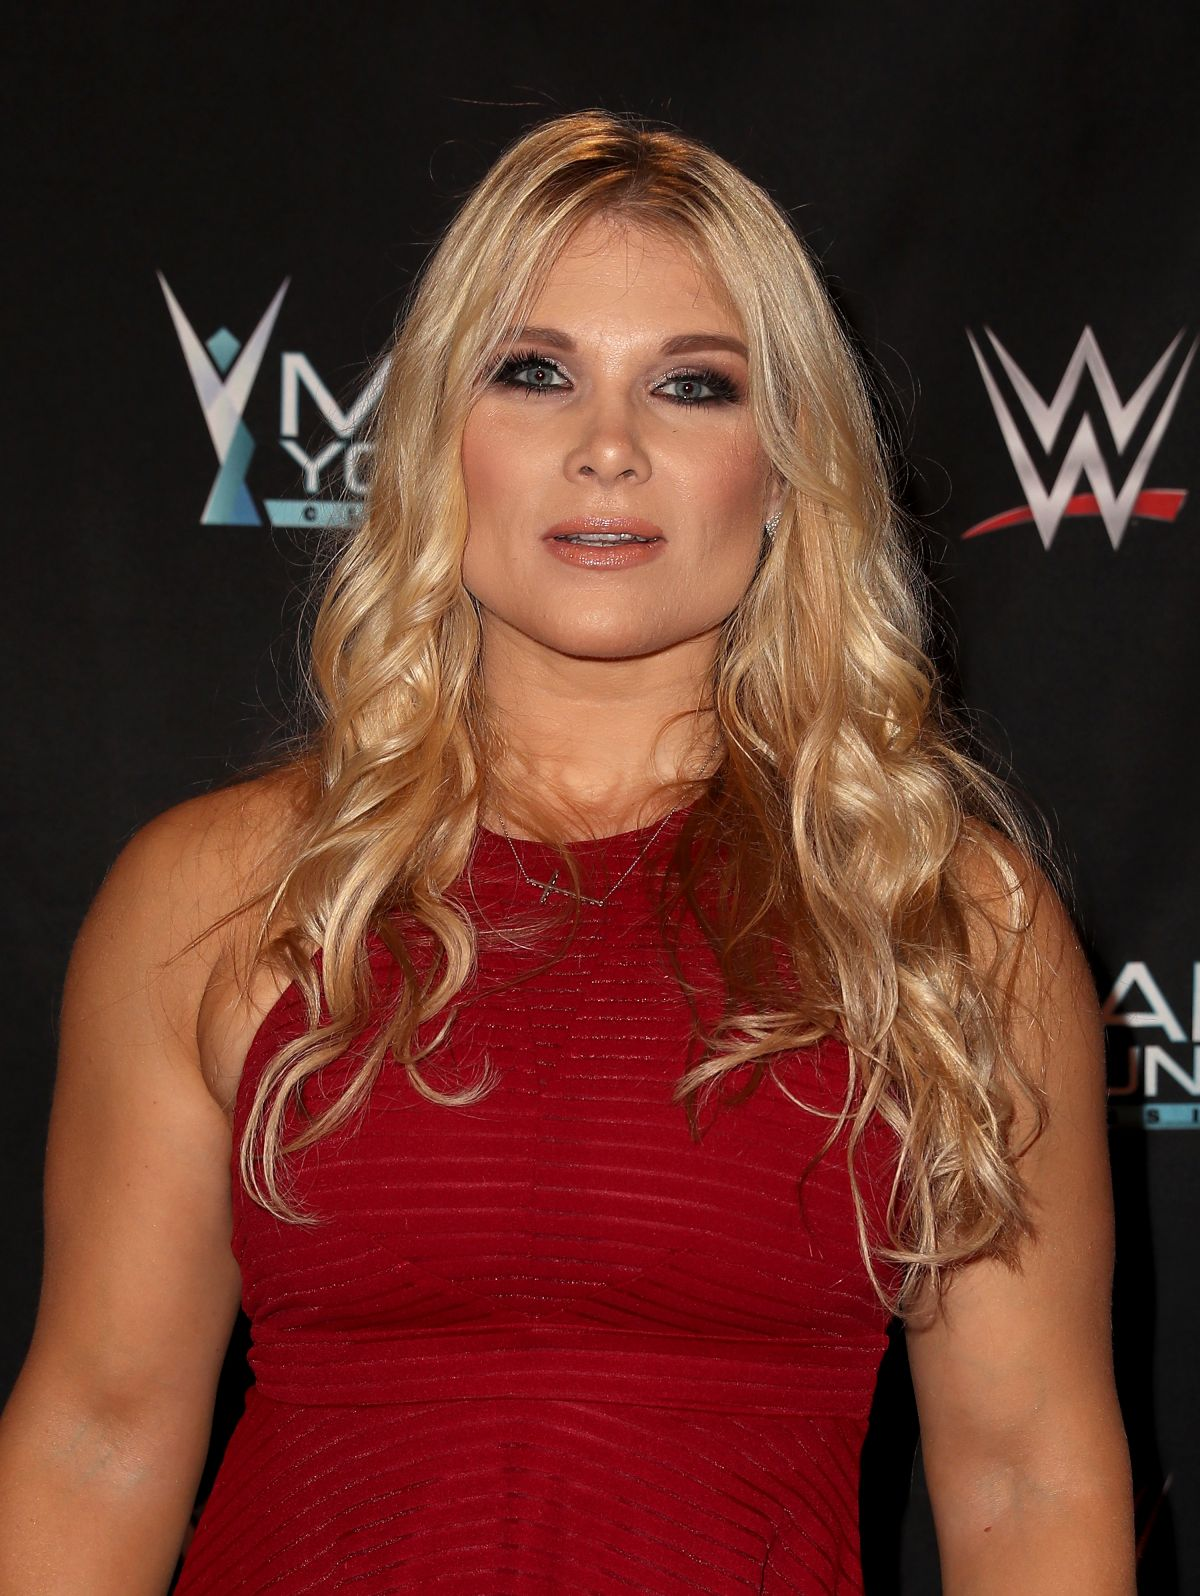 Beth Phoenix Nude Photos 71